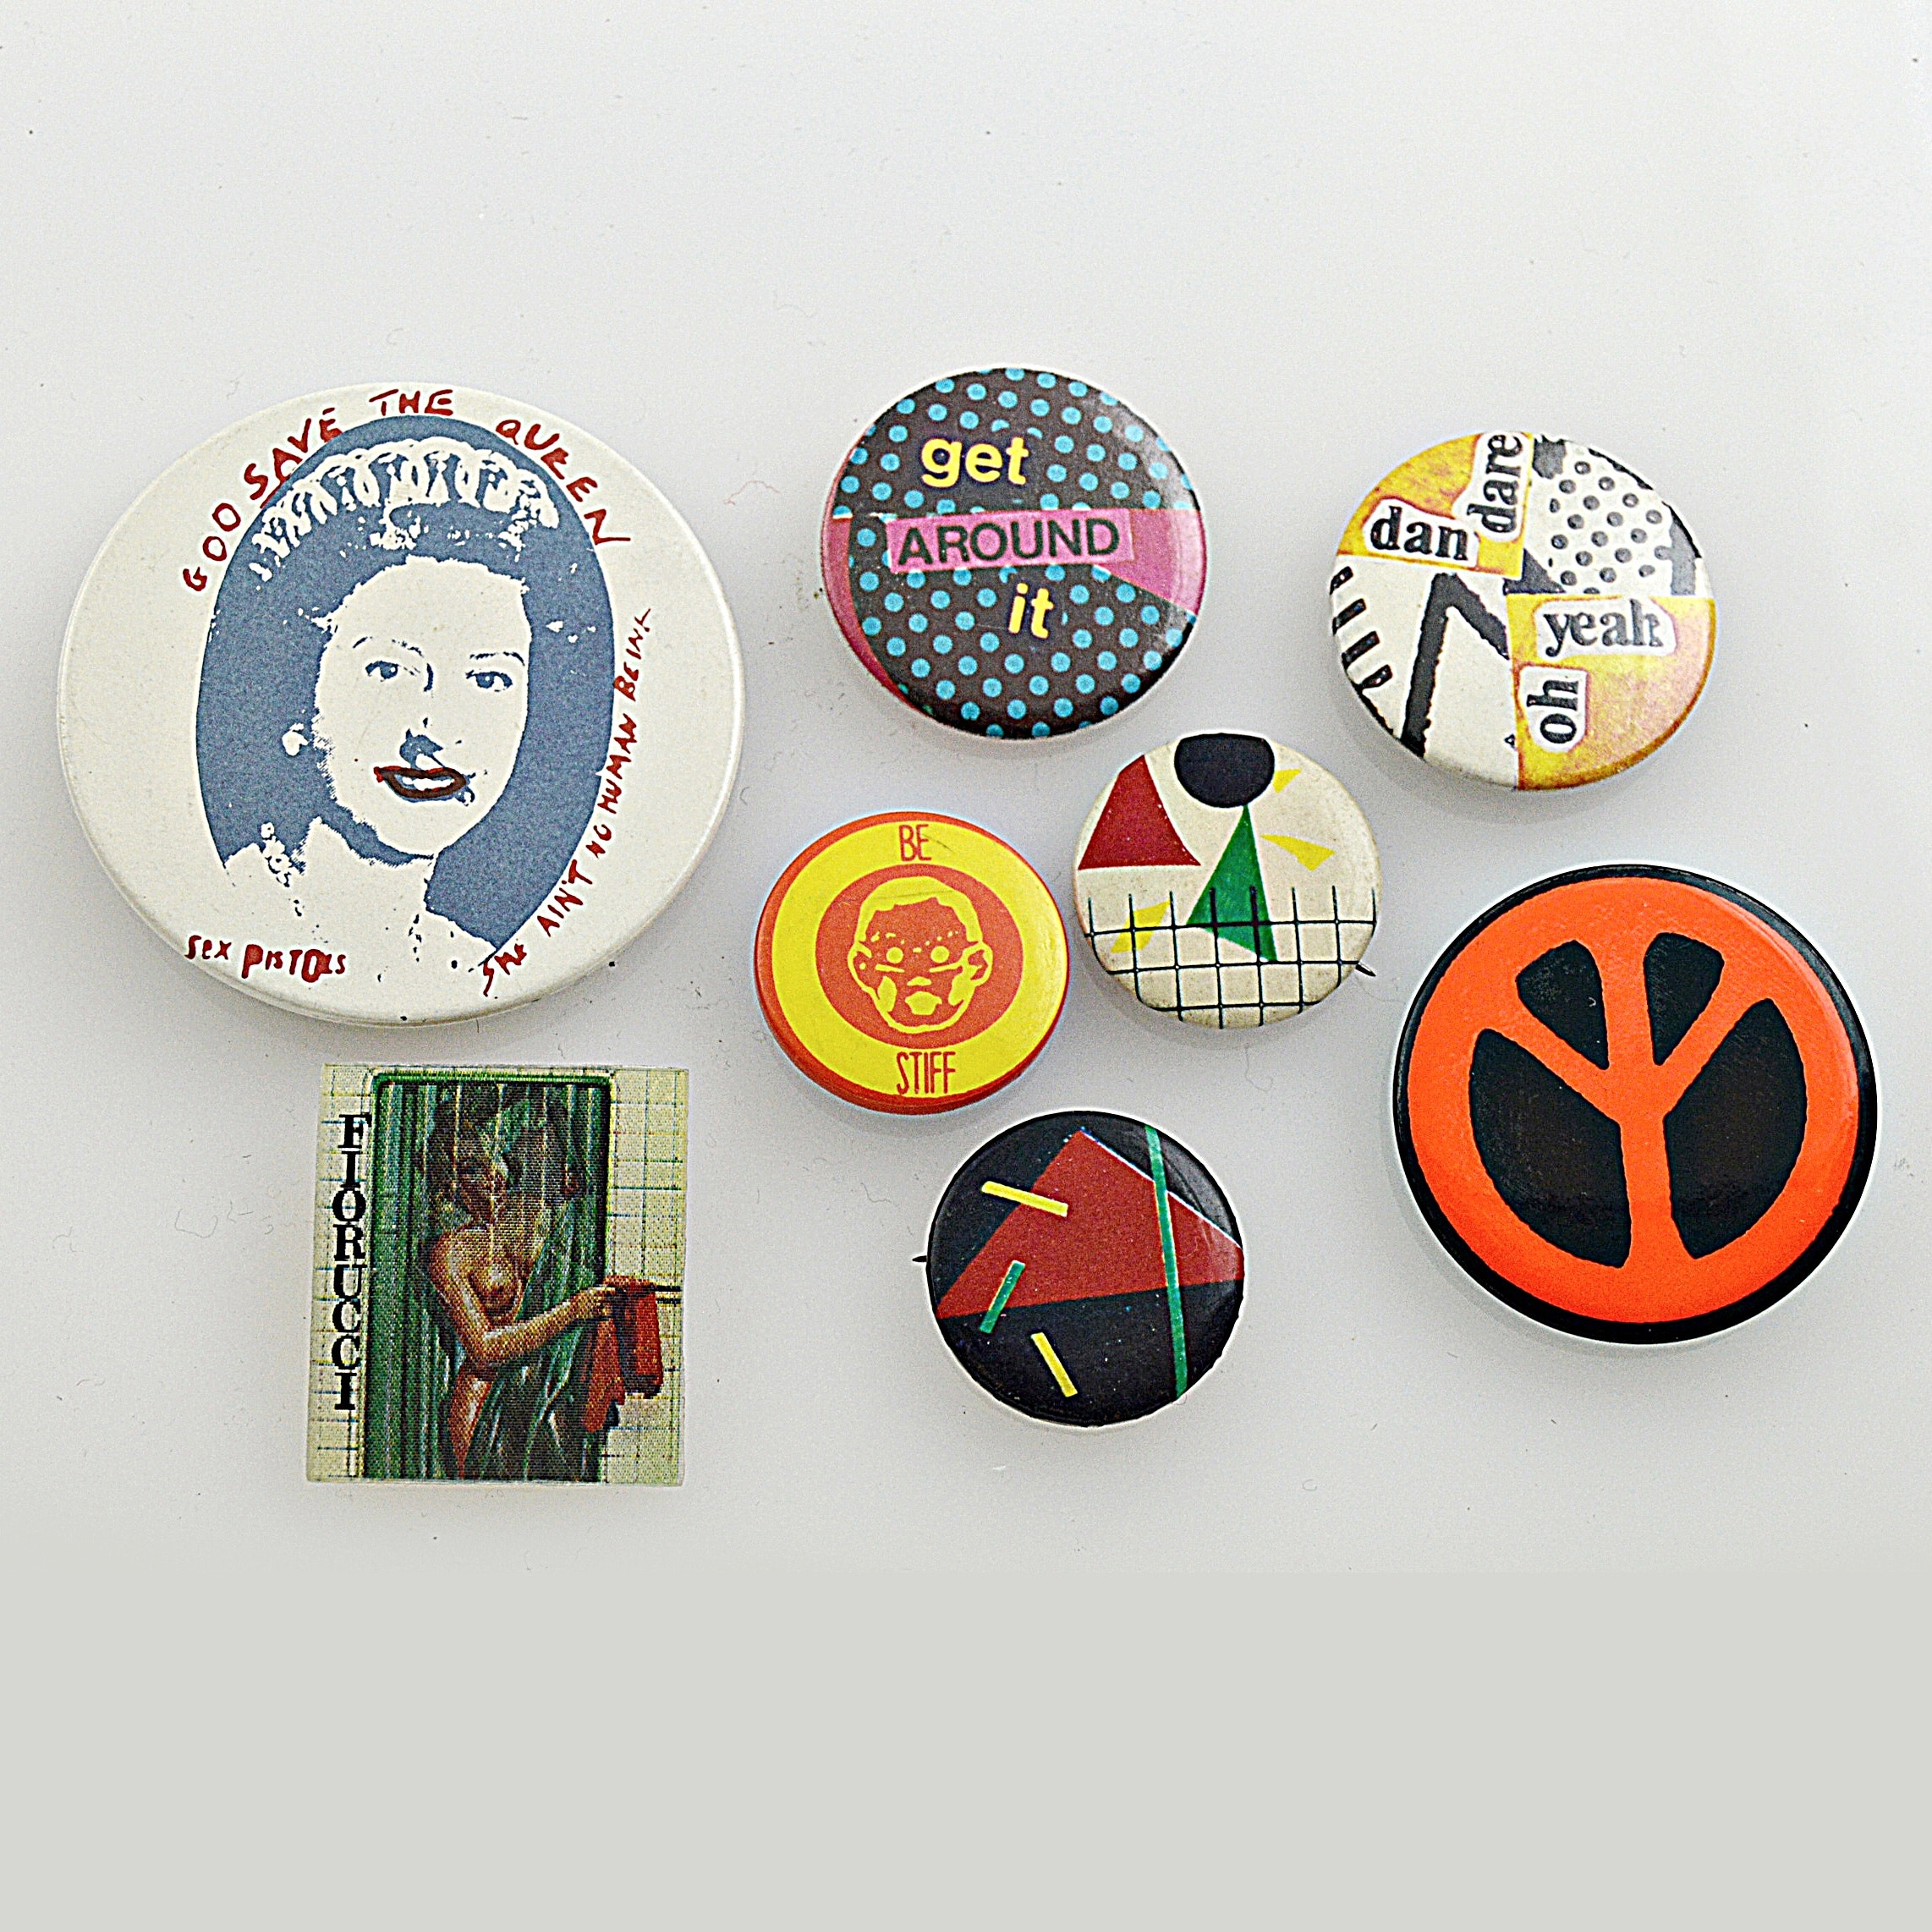 1970s Counterculture and Modernist Pins with The Sex Pistols